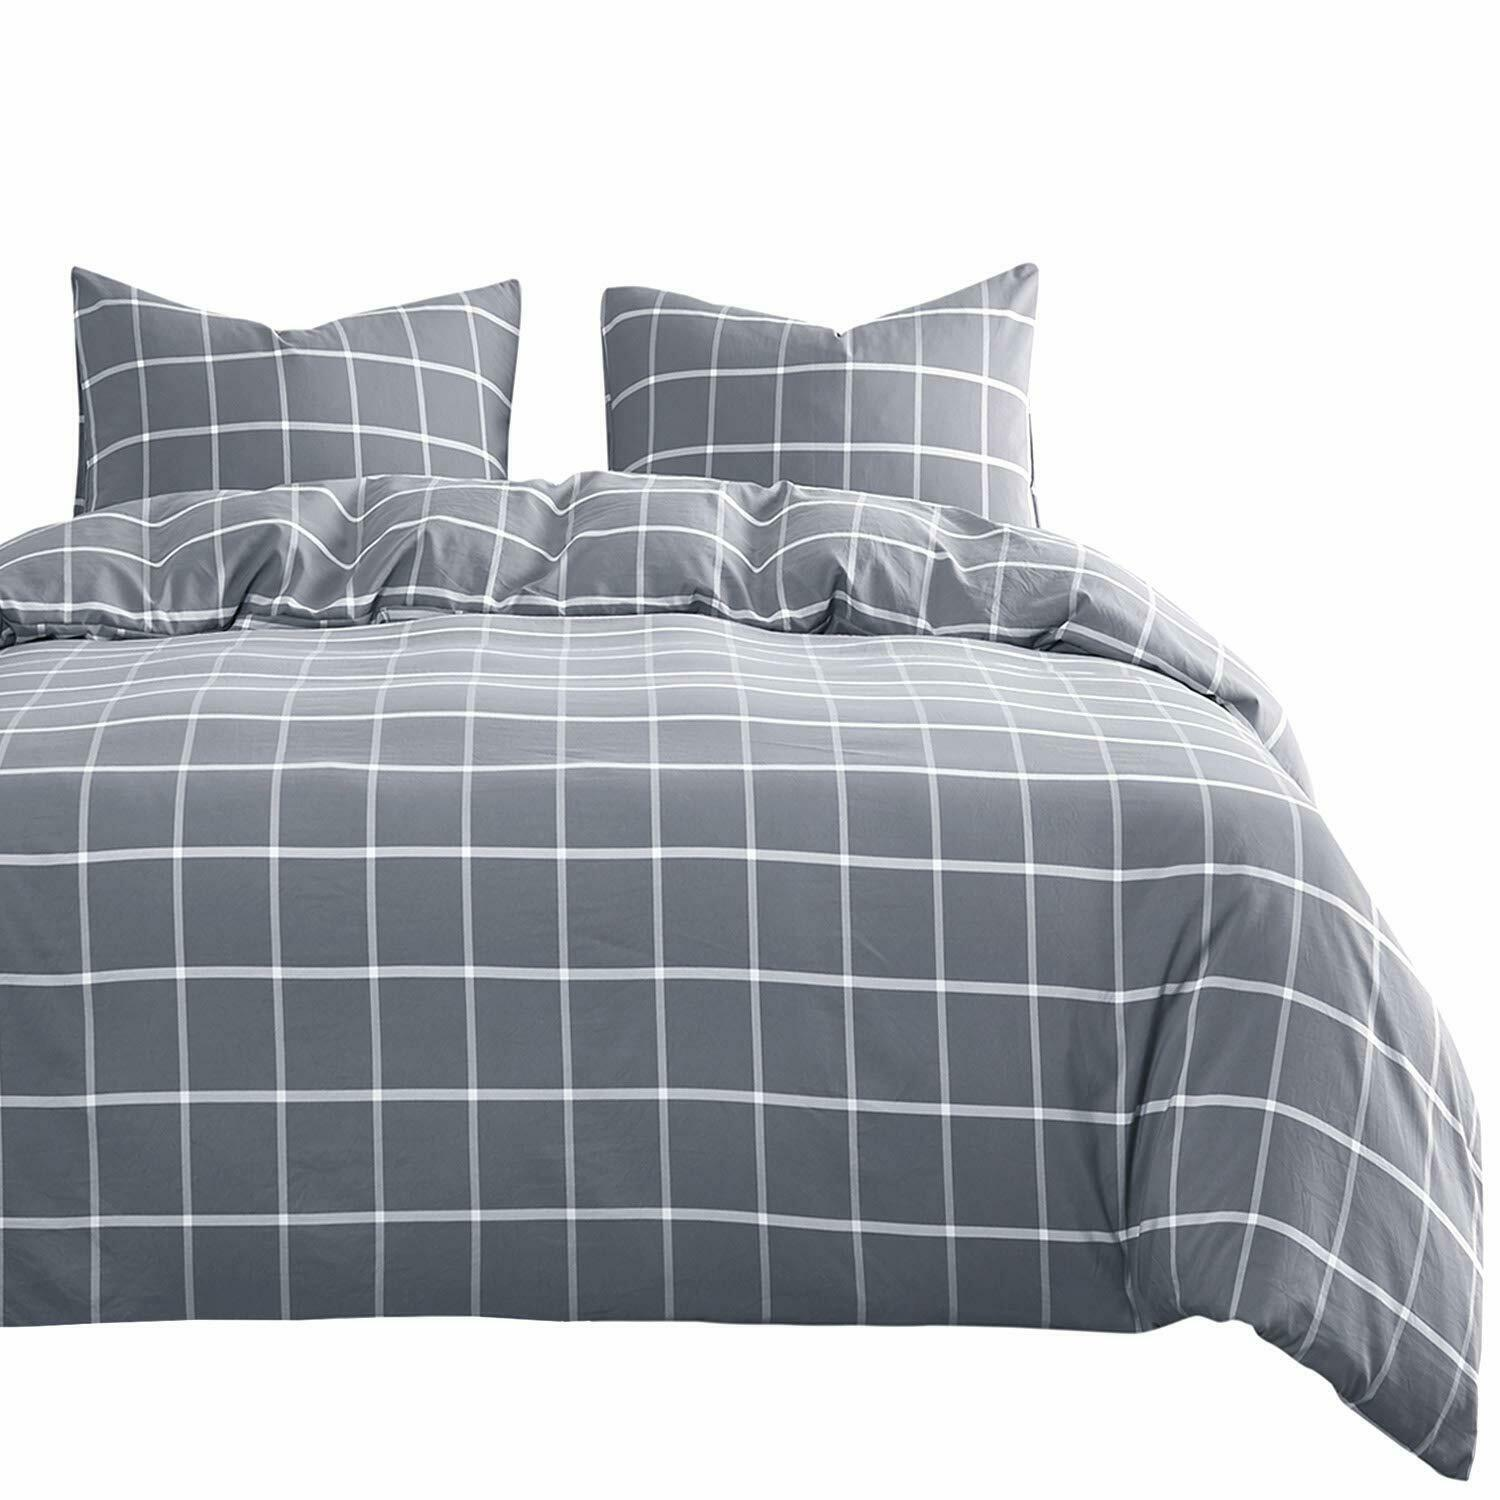 Wake In Cloud Gray Grid Comforter Set Grey With White Grid Geometric Pattern Ebay